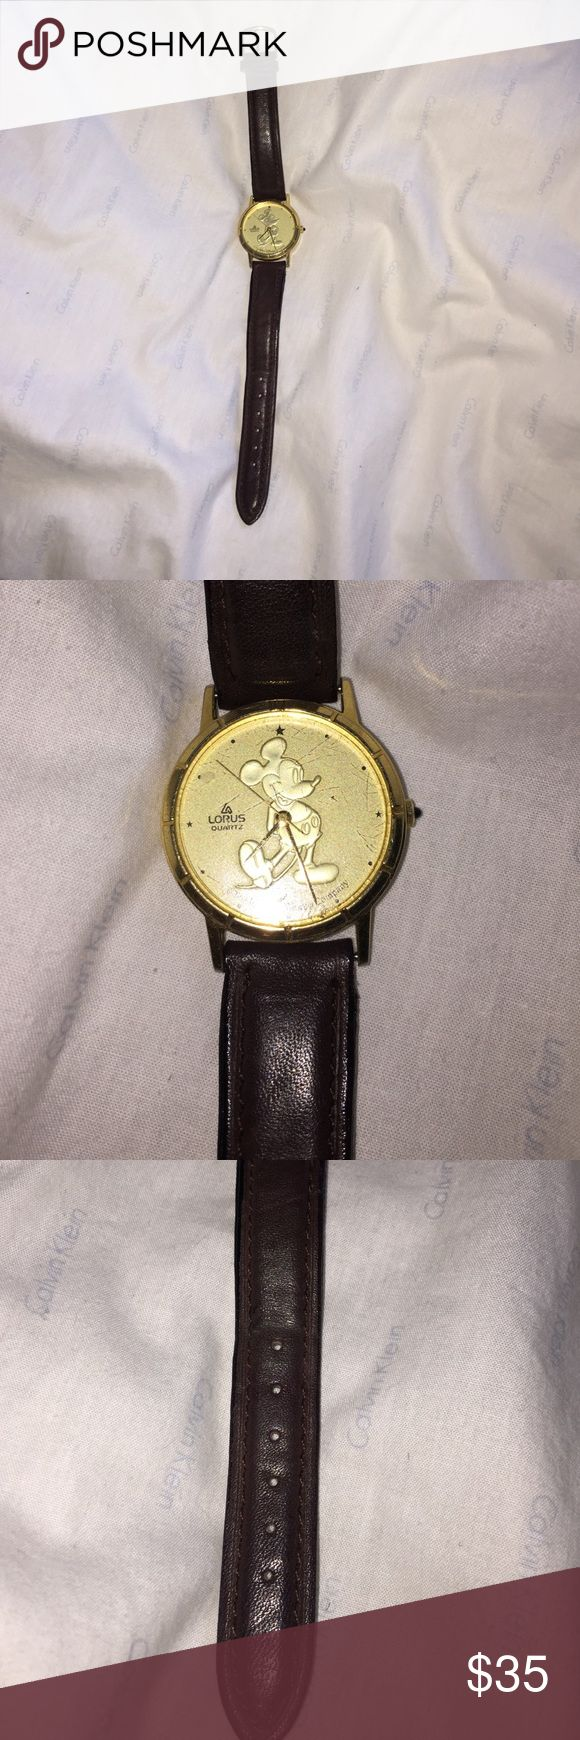 Vintage women's lorus Mickey Mouse watch Disney Vintage the walt disney company Accessories Watches